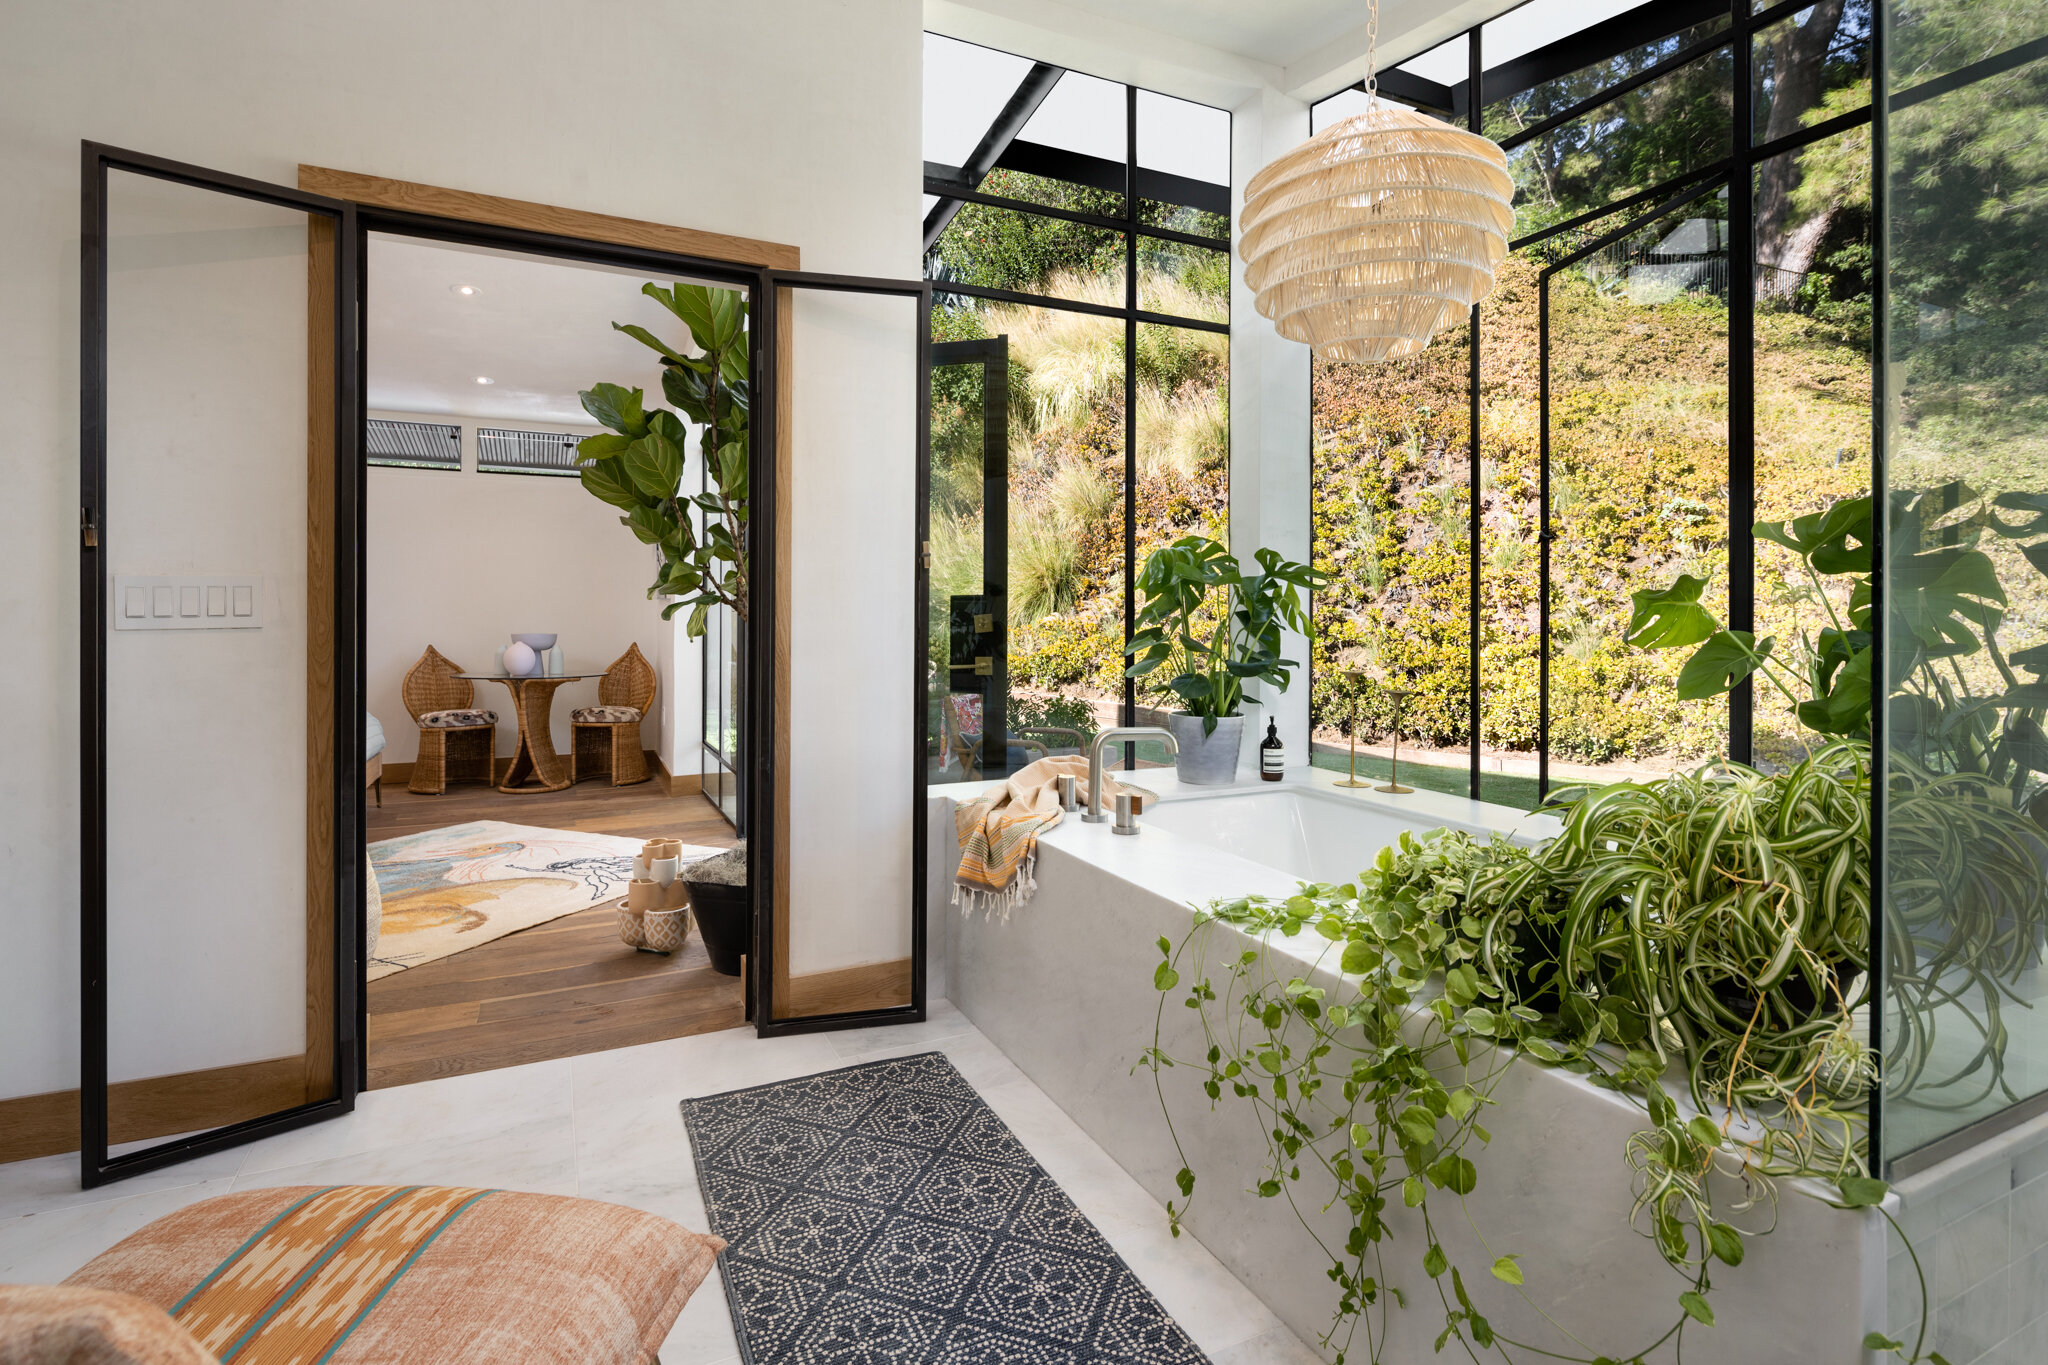 Custom steel-framed windows bring garden views into the bathroom of the latest home project by artist-designer Kim Gordon. The reimagined Midcentury Modern-style house is going on the market in the Hollywood Hills for $3.25 million. (Tyler Hogan)